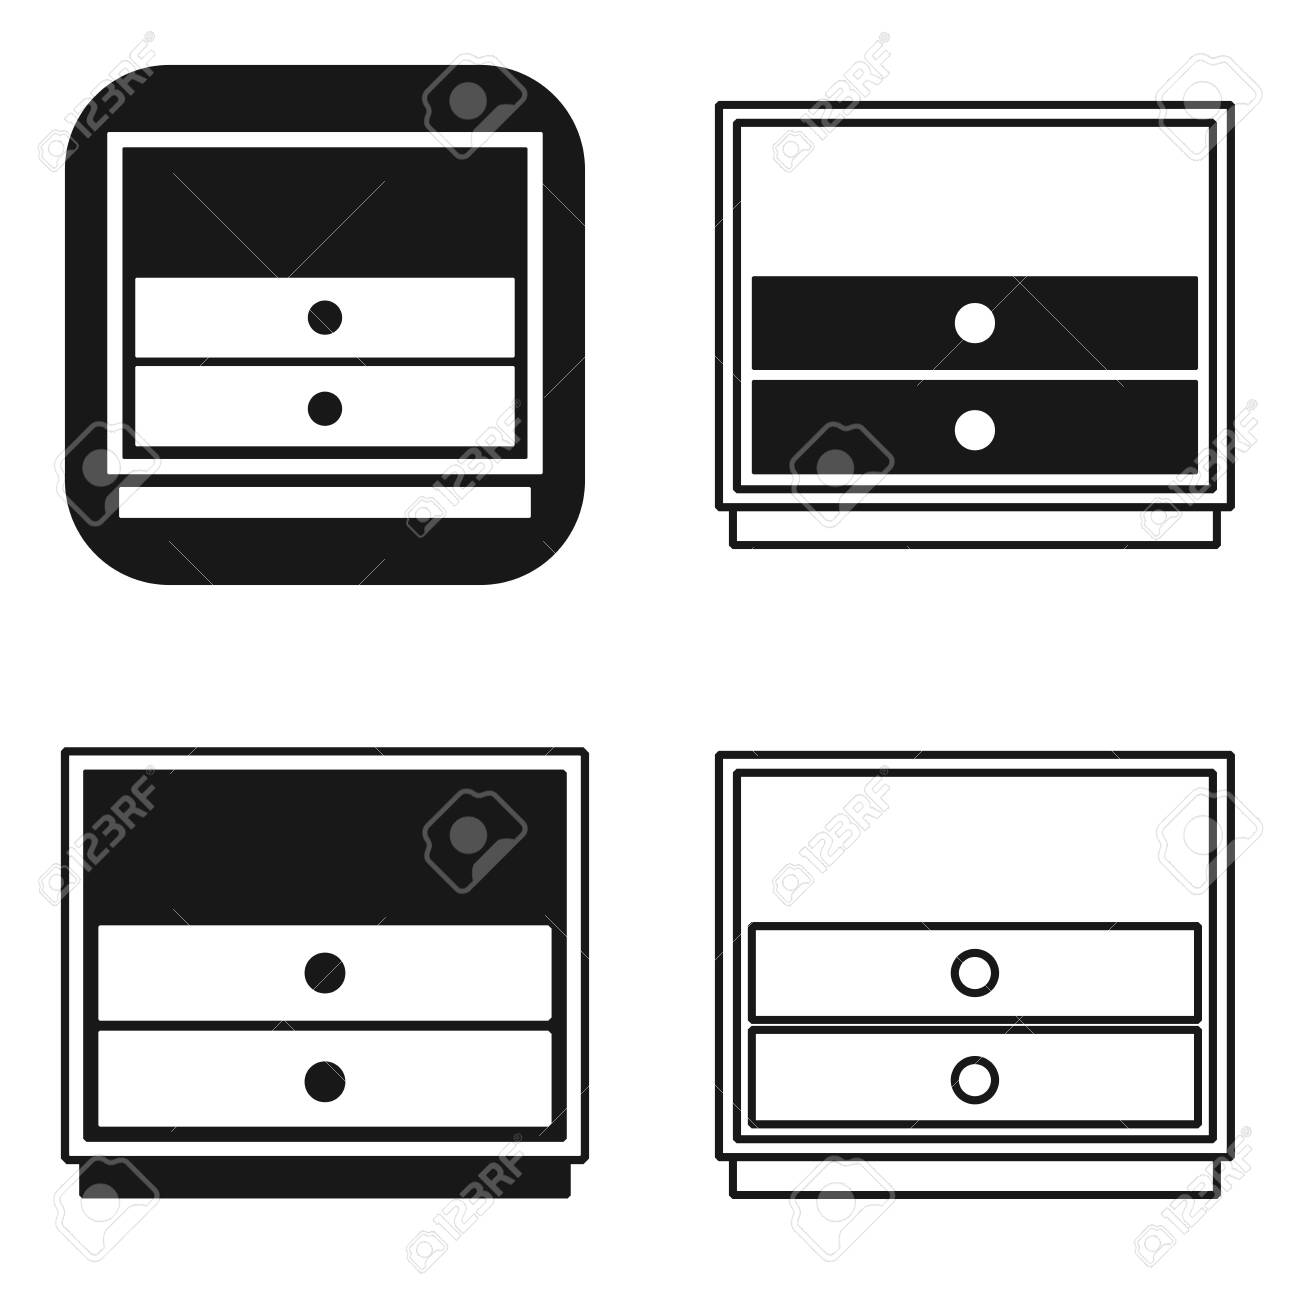 Black And White Nightstand Bedside Icons Set Simple Linear Design Royalty Free Cliparts Vectors And Stock Illustration Image 130328811